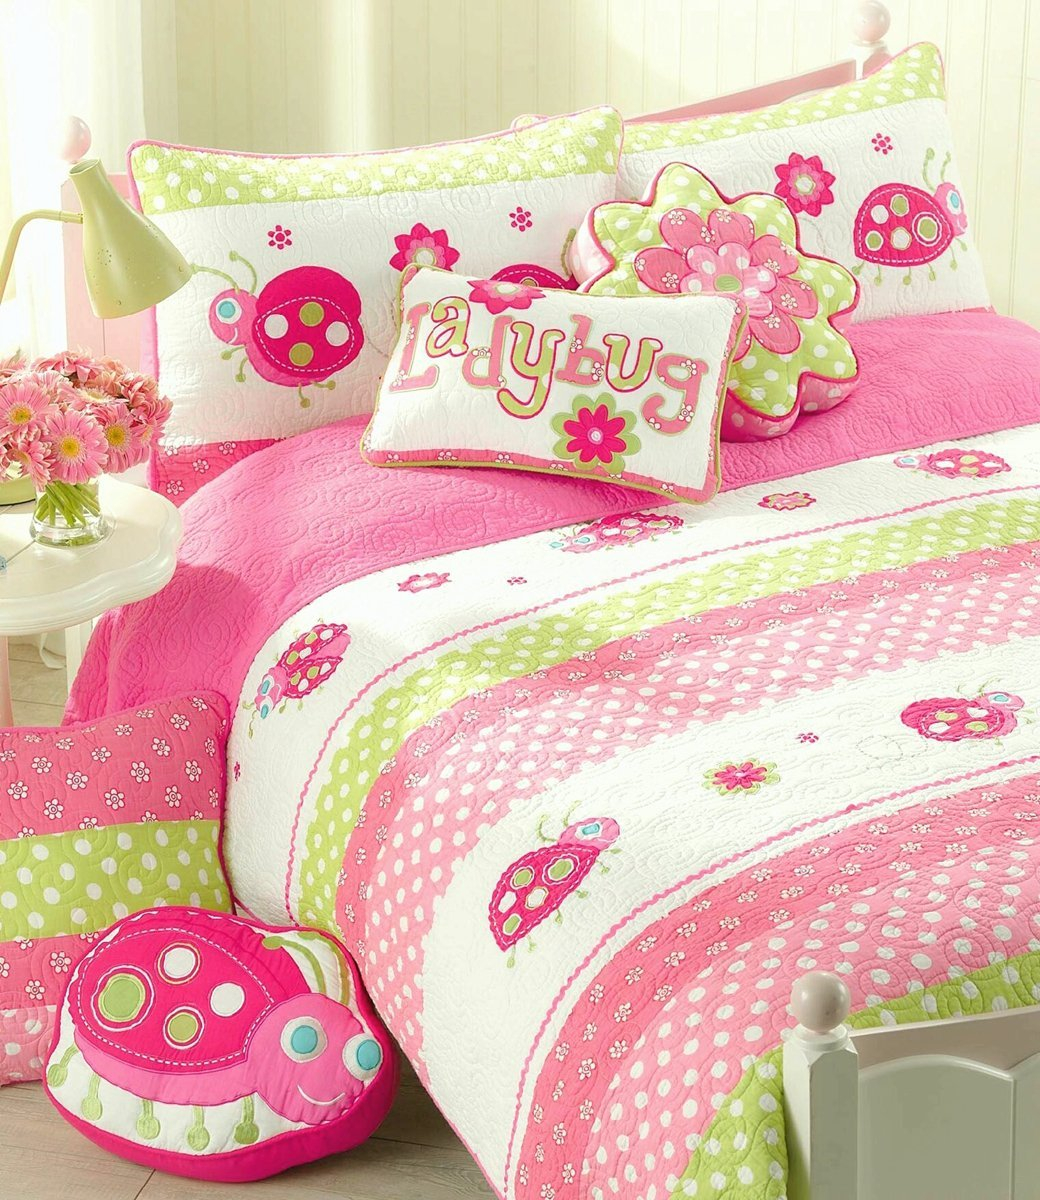 Cozy Line Home Fashions 4-Piece Pink Ladybug Quilt Bedding Set, Green Fuchsia Flower Embroidered 100 % COTTON Bedspread Coverlet Gift for Kids Girls (Twin - 4pc: 1 quilt + 1 sham + 2 Decor Pillows)